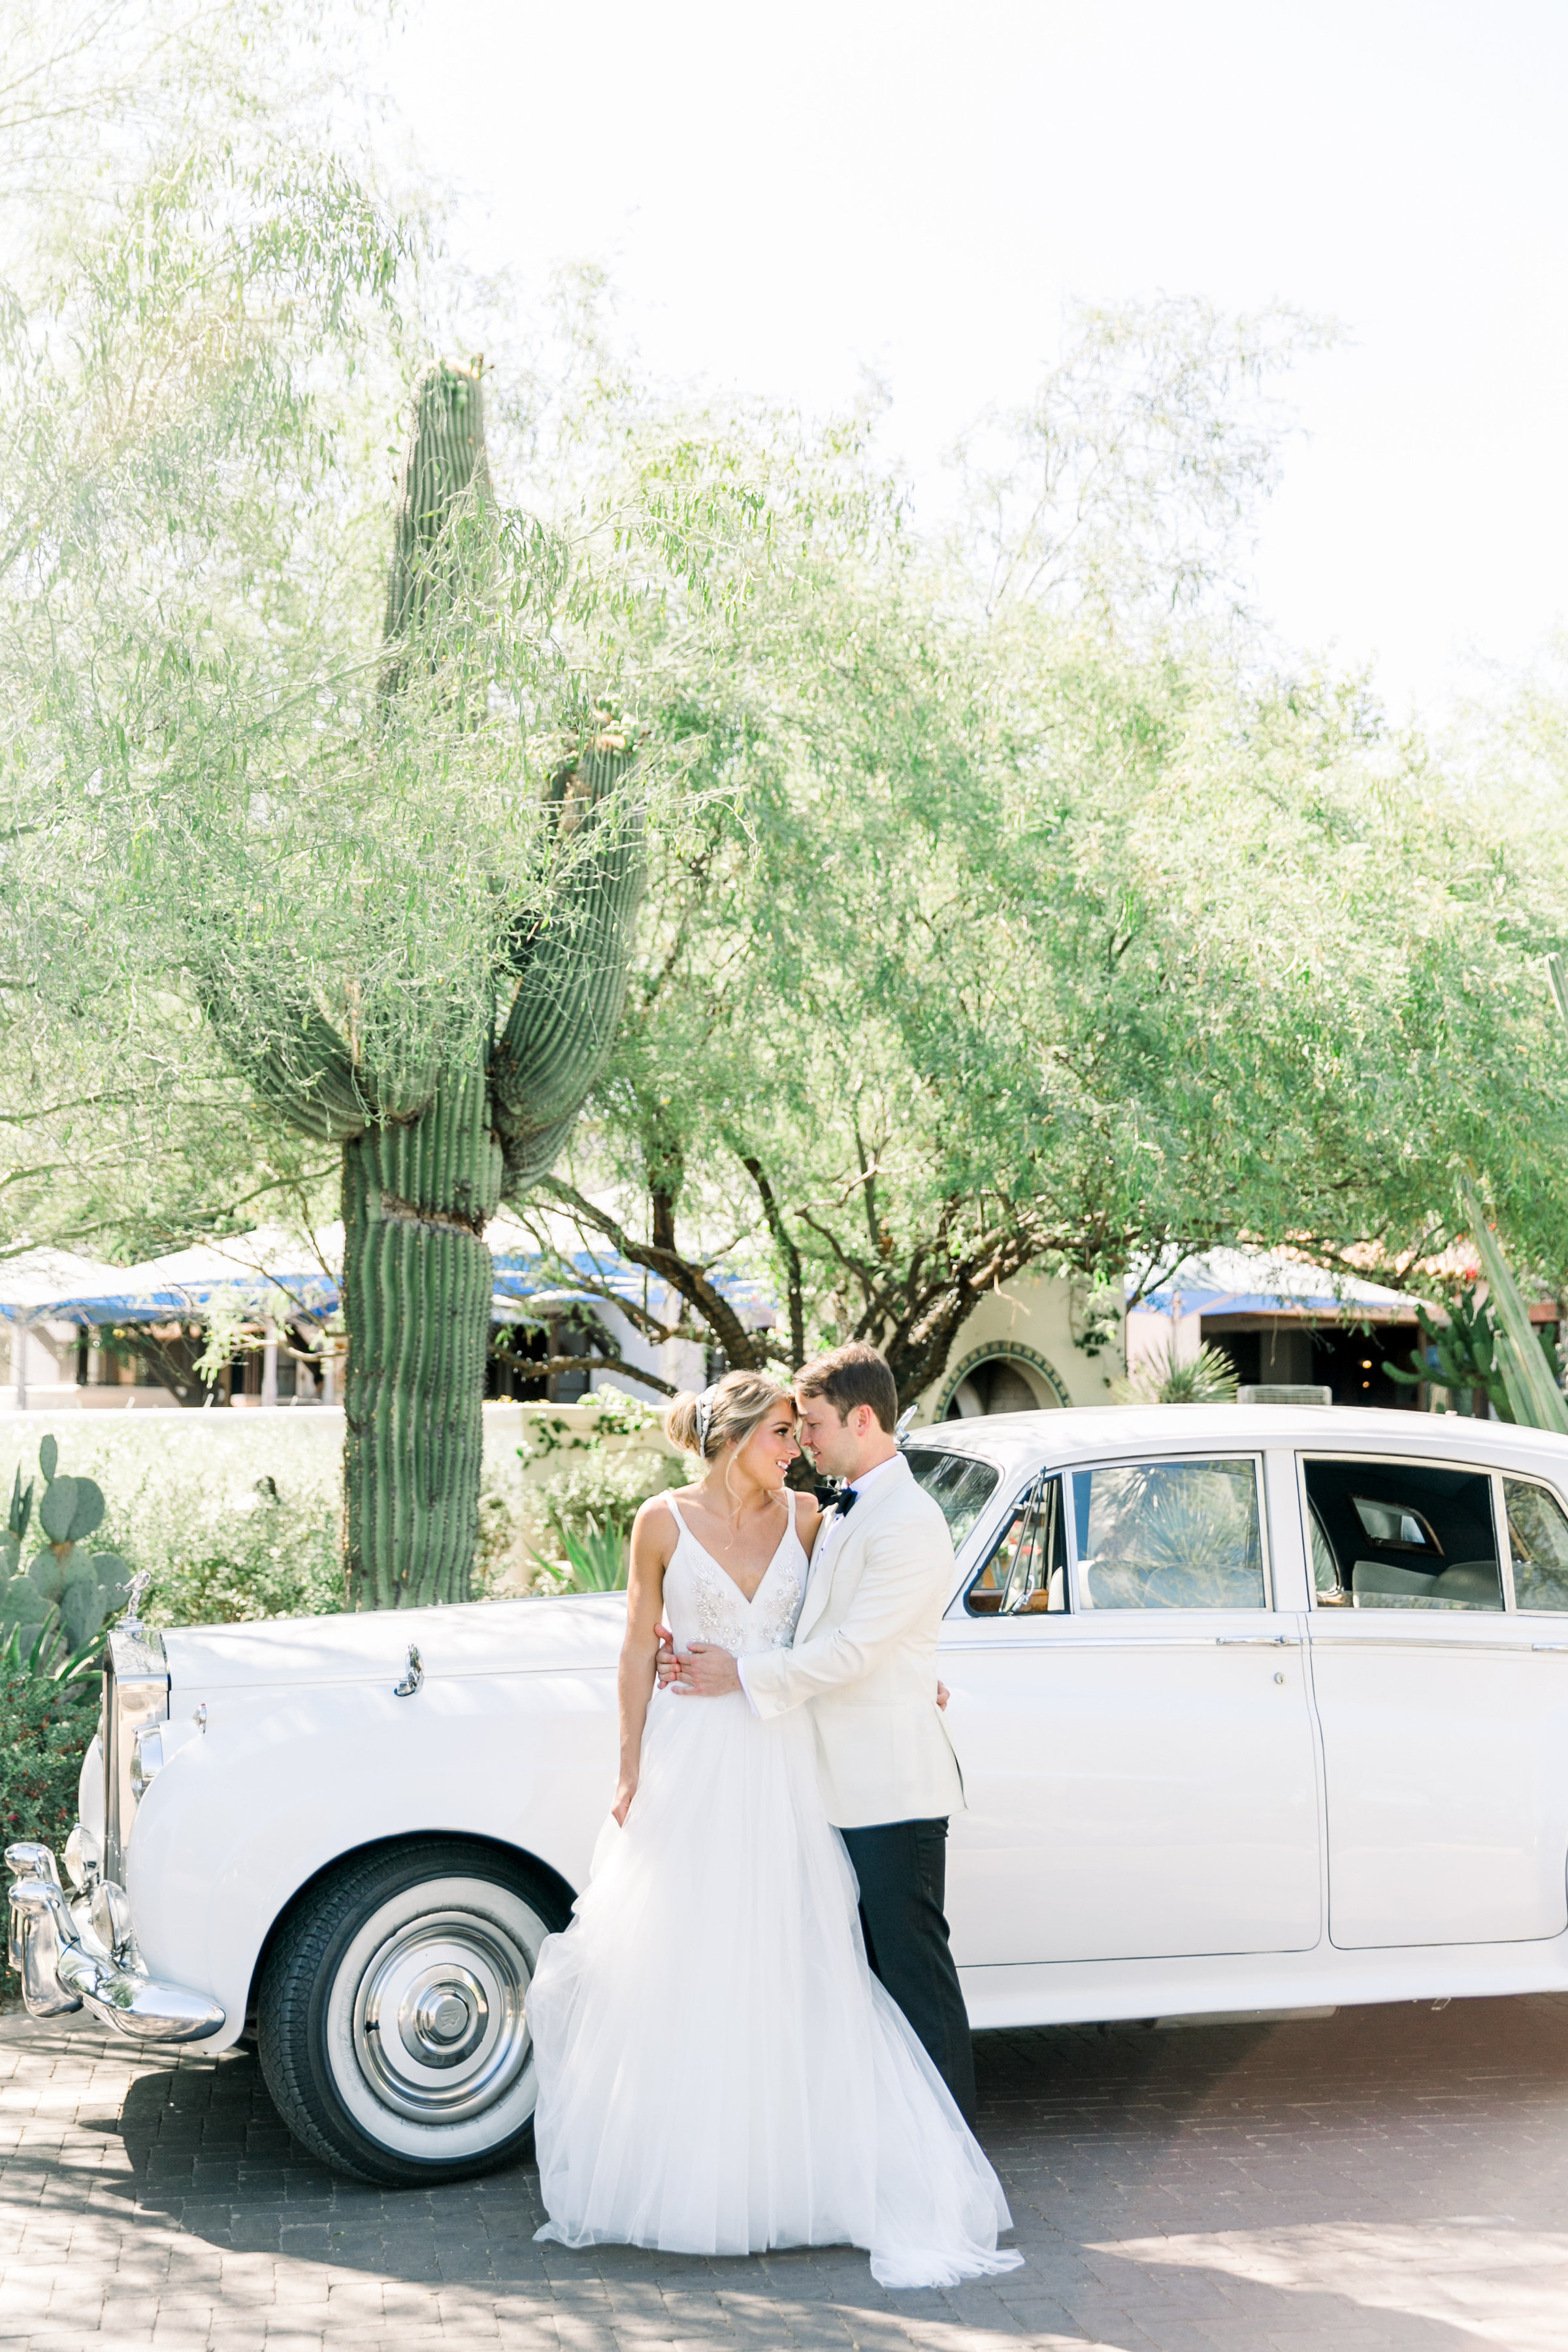 Karlie Colleen Photography - El Chorro Arizona Desert Wedding - Kylie & Doug-302